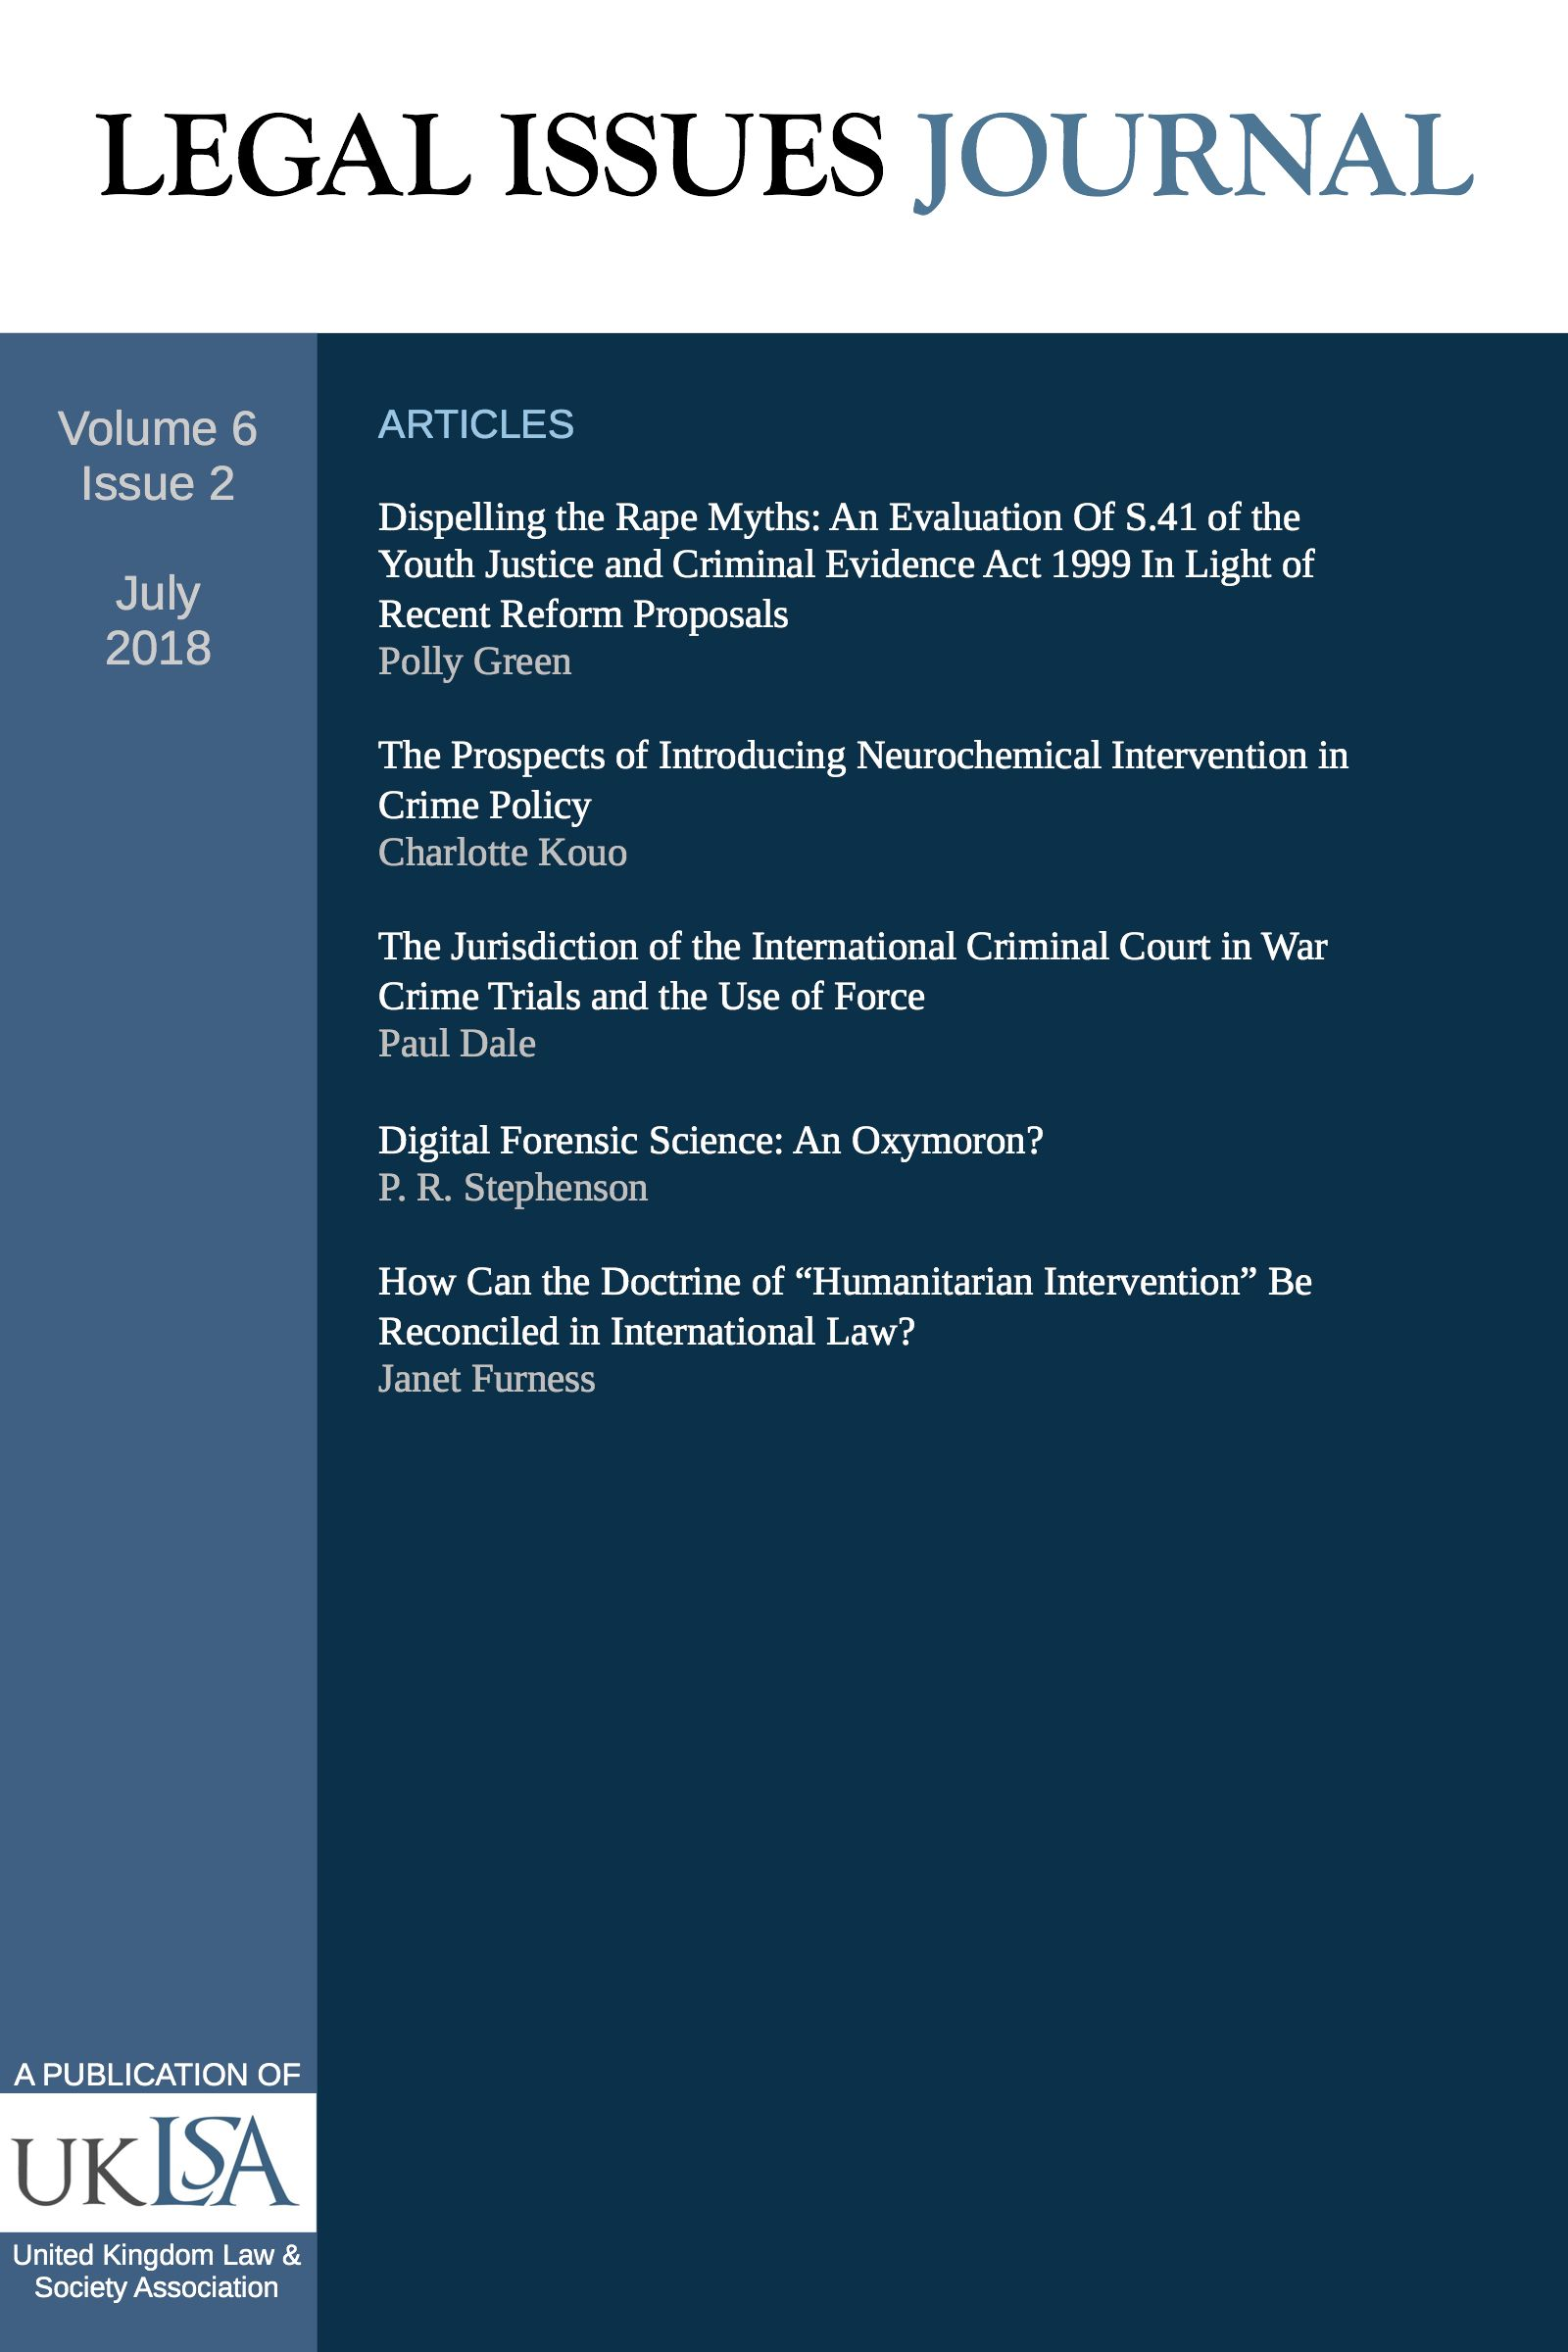 Now Available Legal Issues Journal, Volume 6, Issue 2